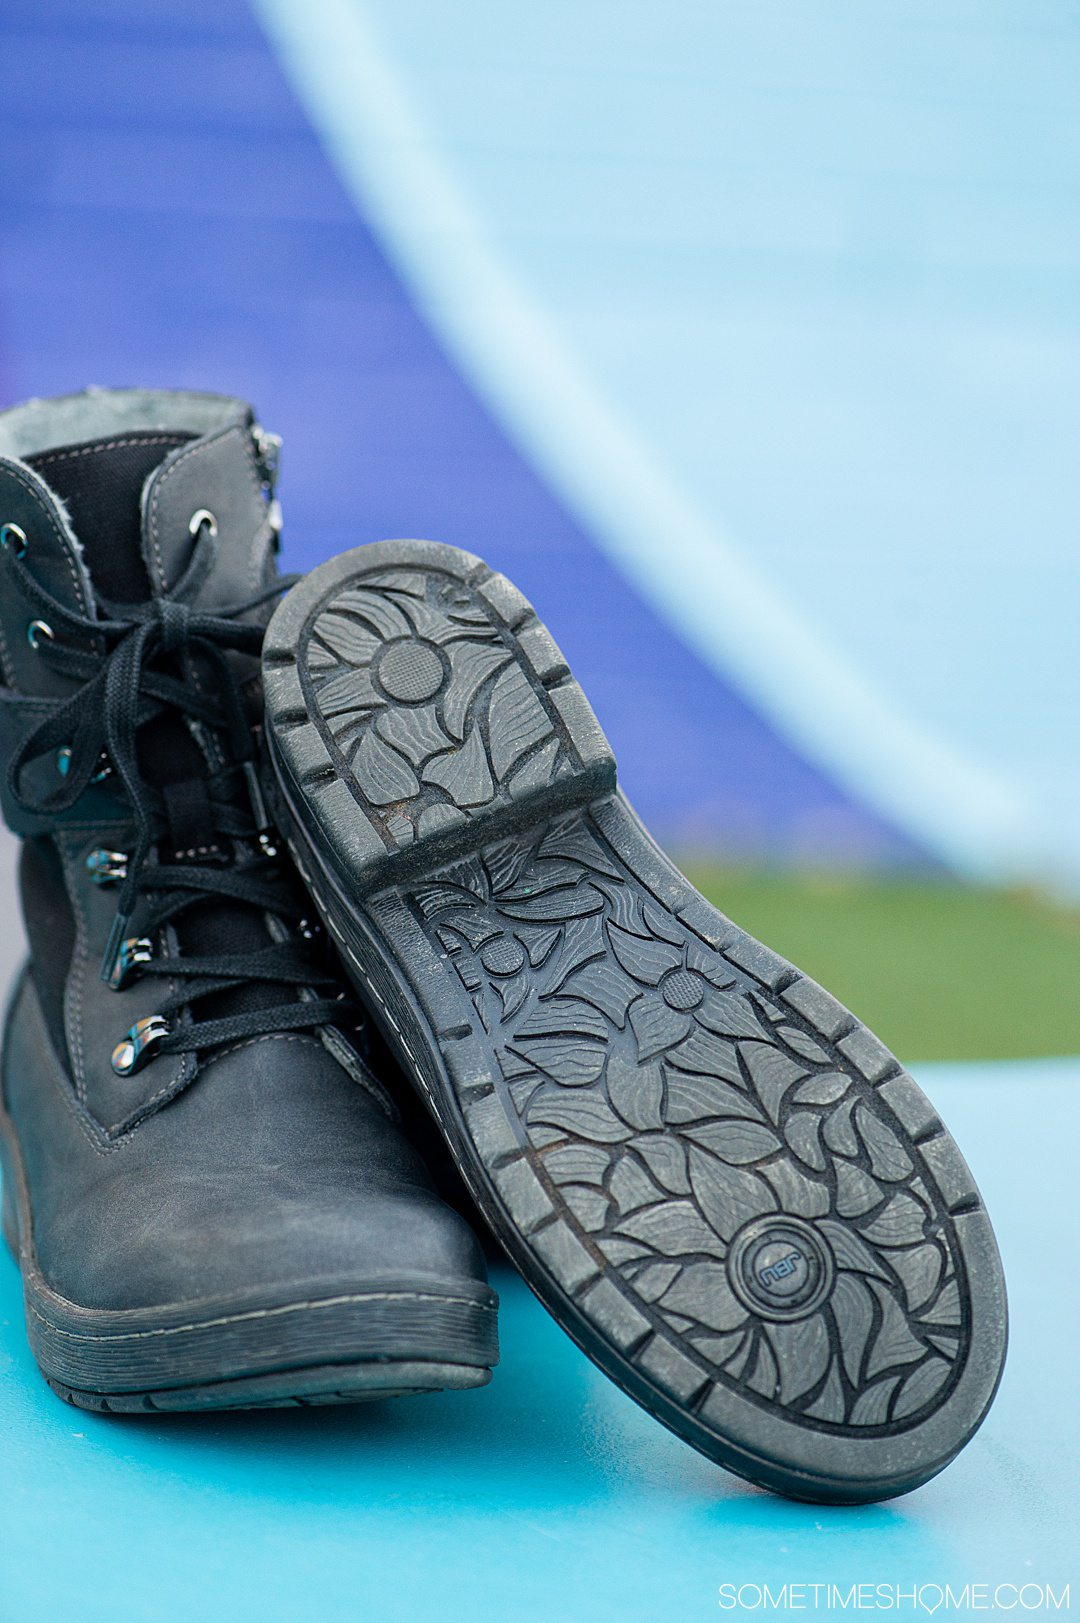 Decorative soles and laced-up front of a black pair of combat-inspired Jambu & Co. boots against a colorful background.